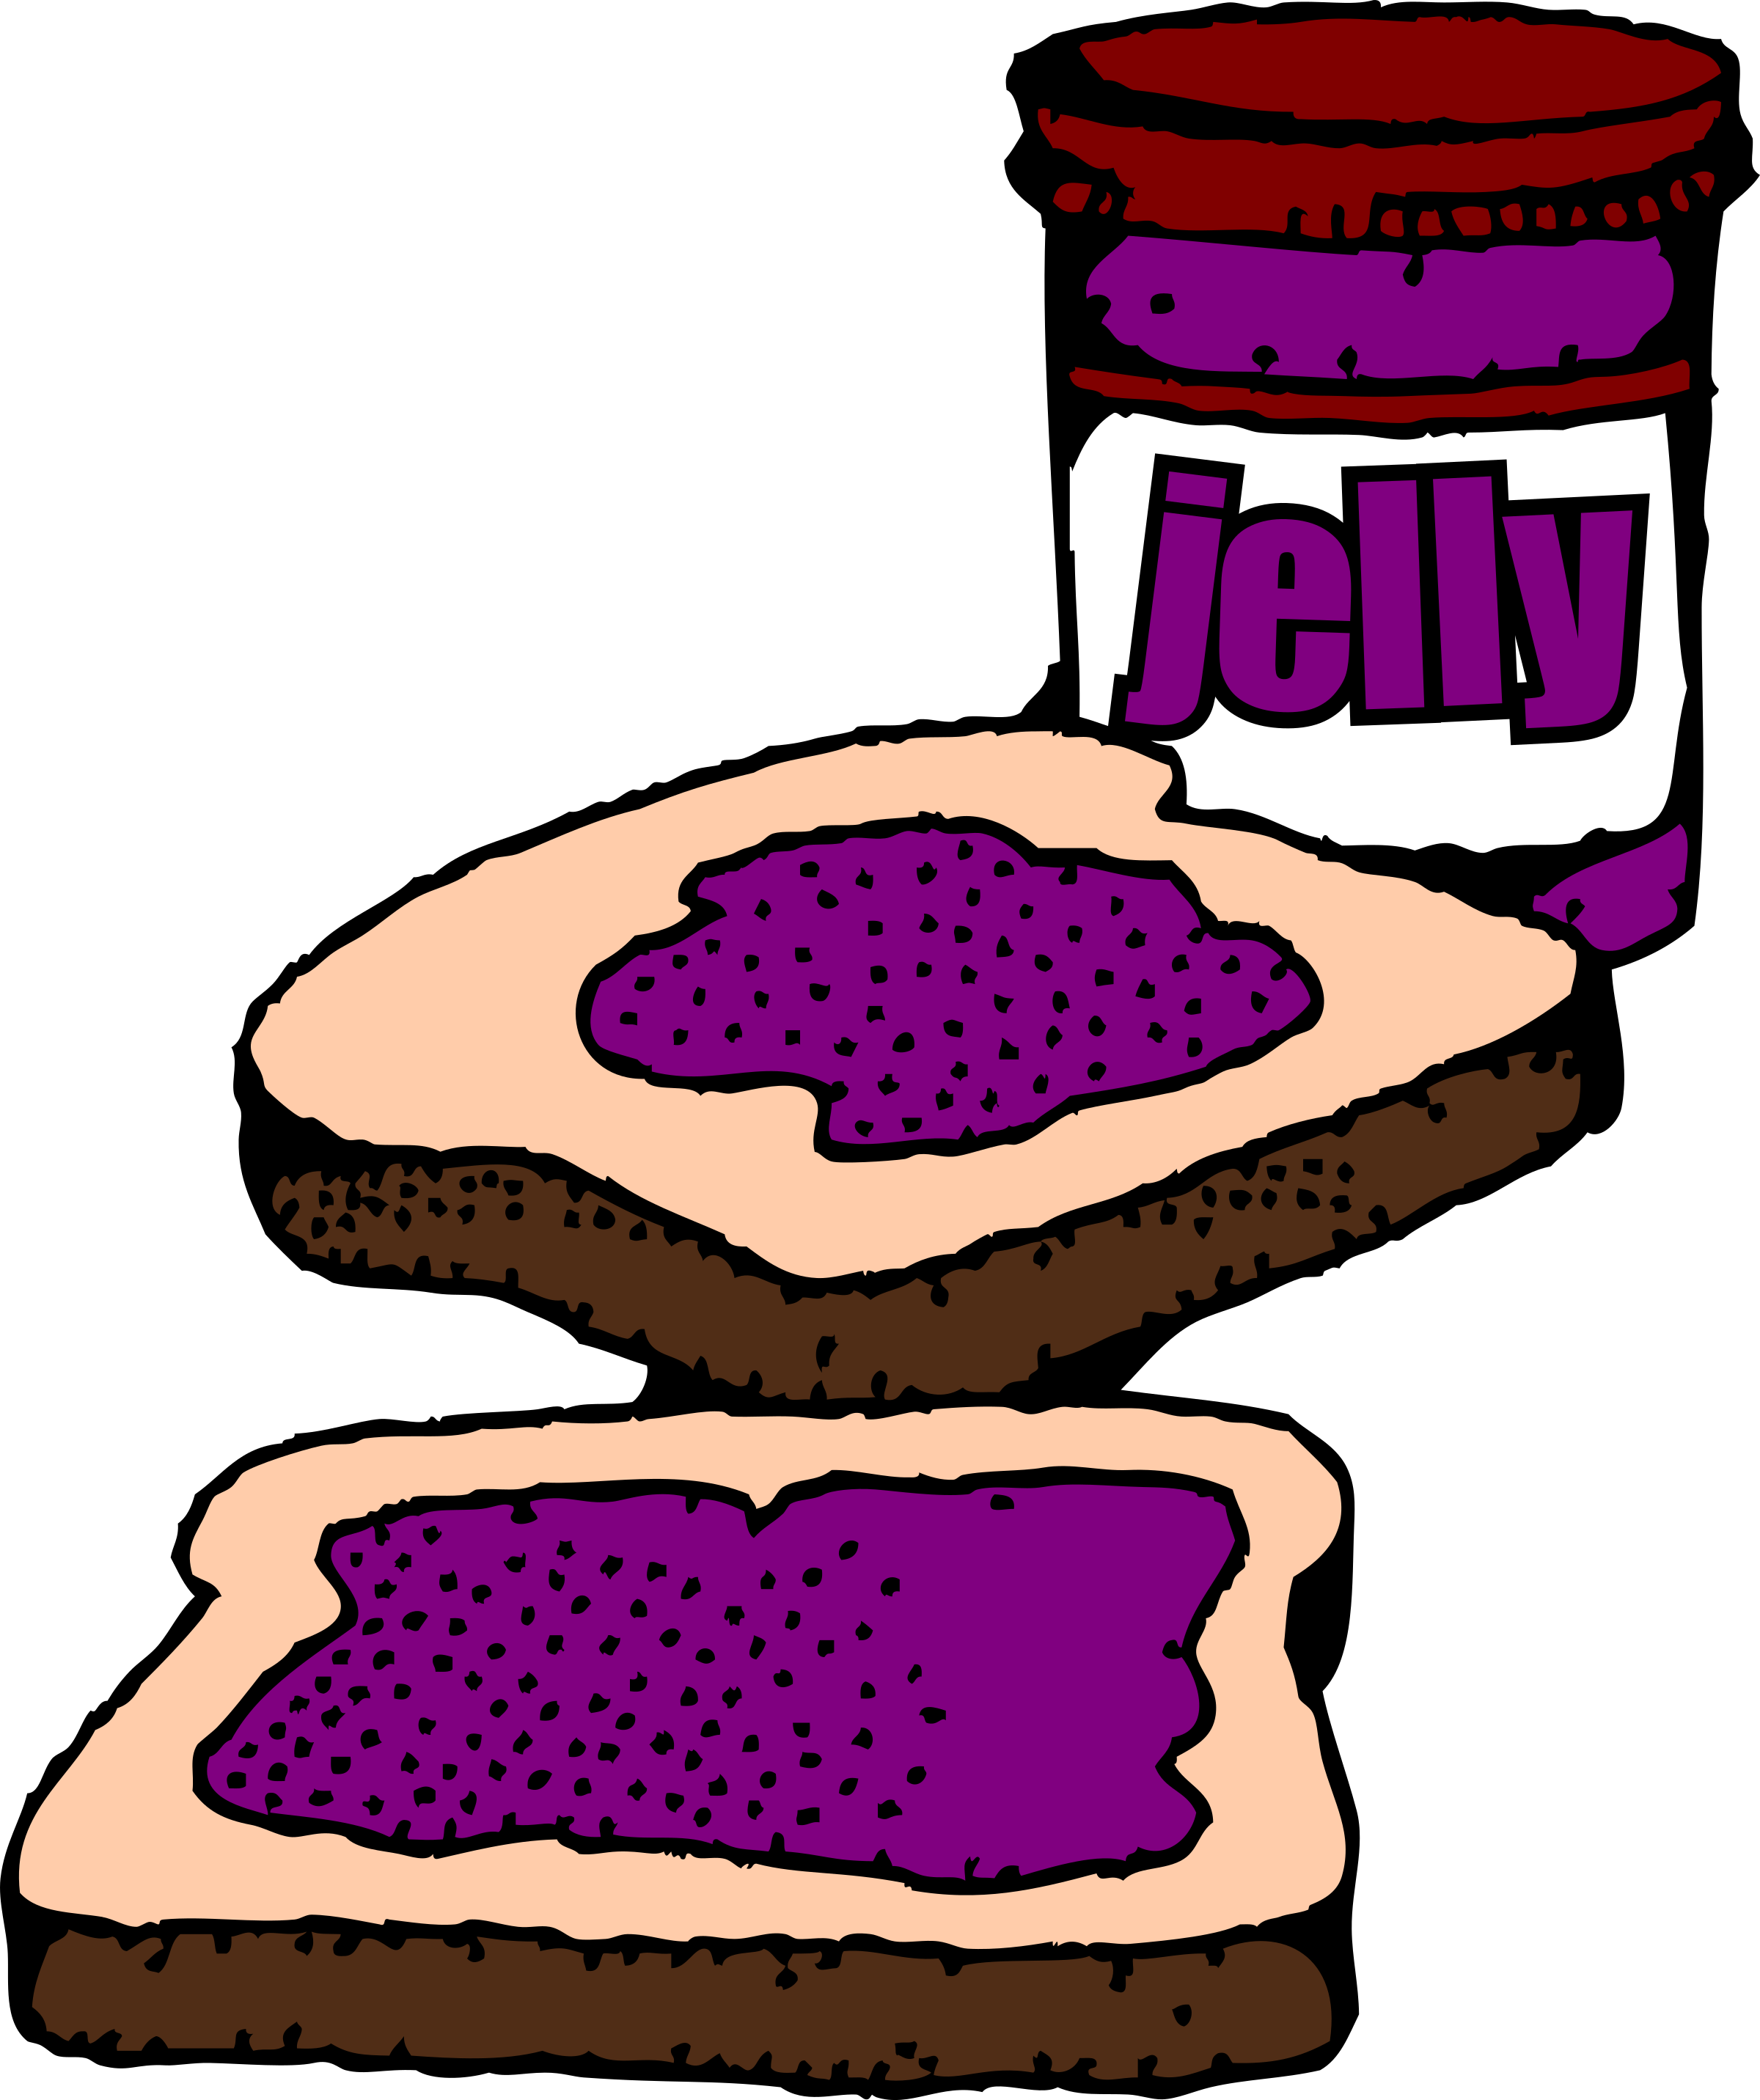 Jellie clipart Clipart Jelly peanut Peanut Time